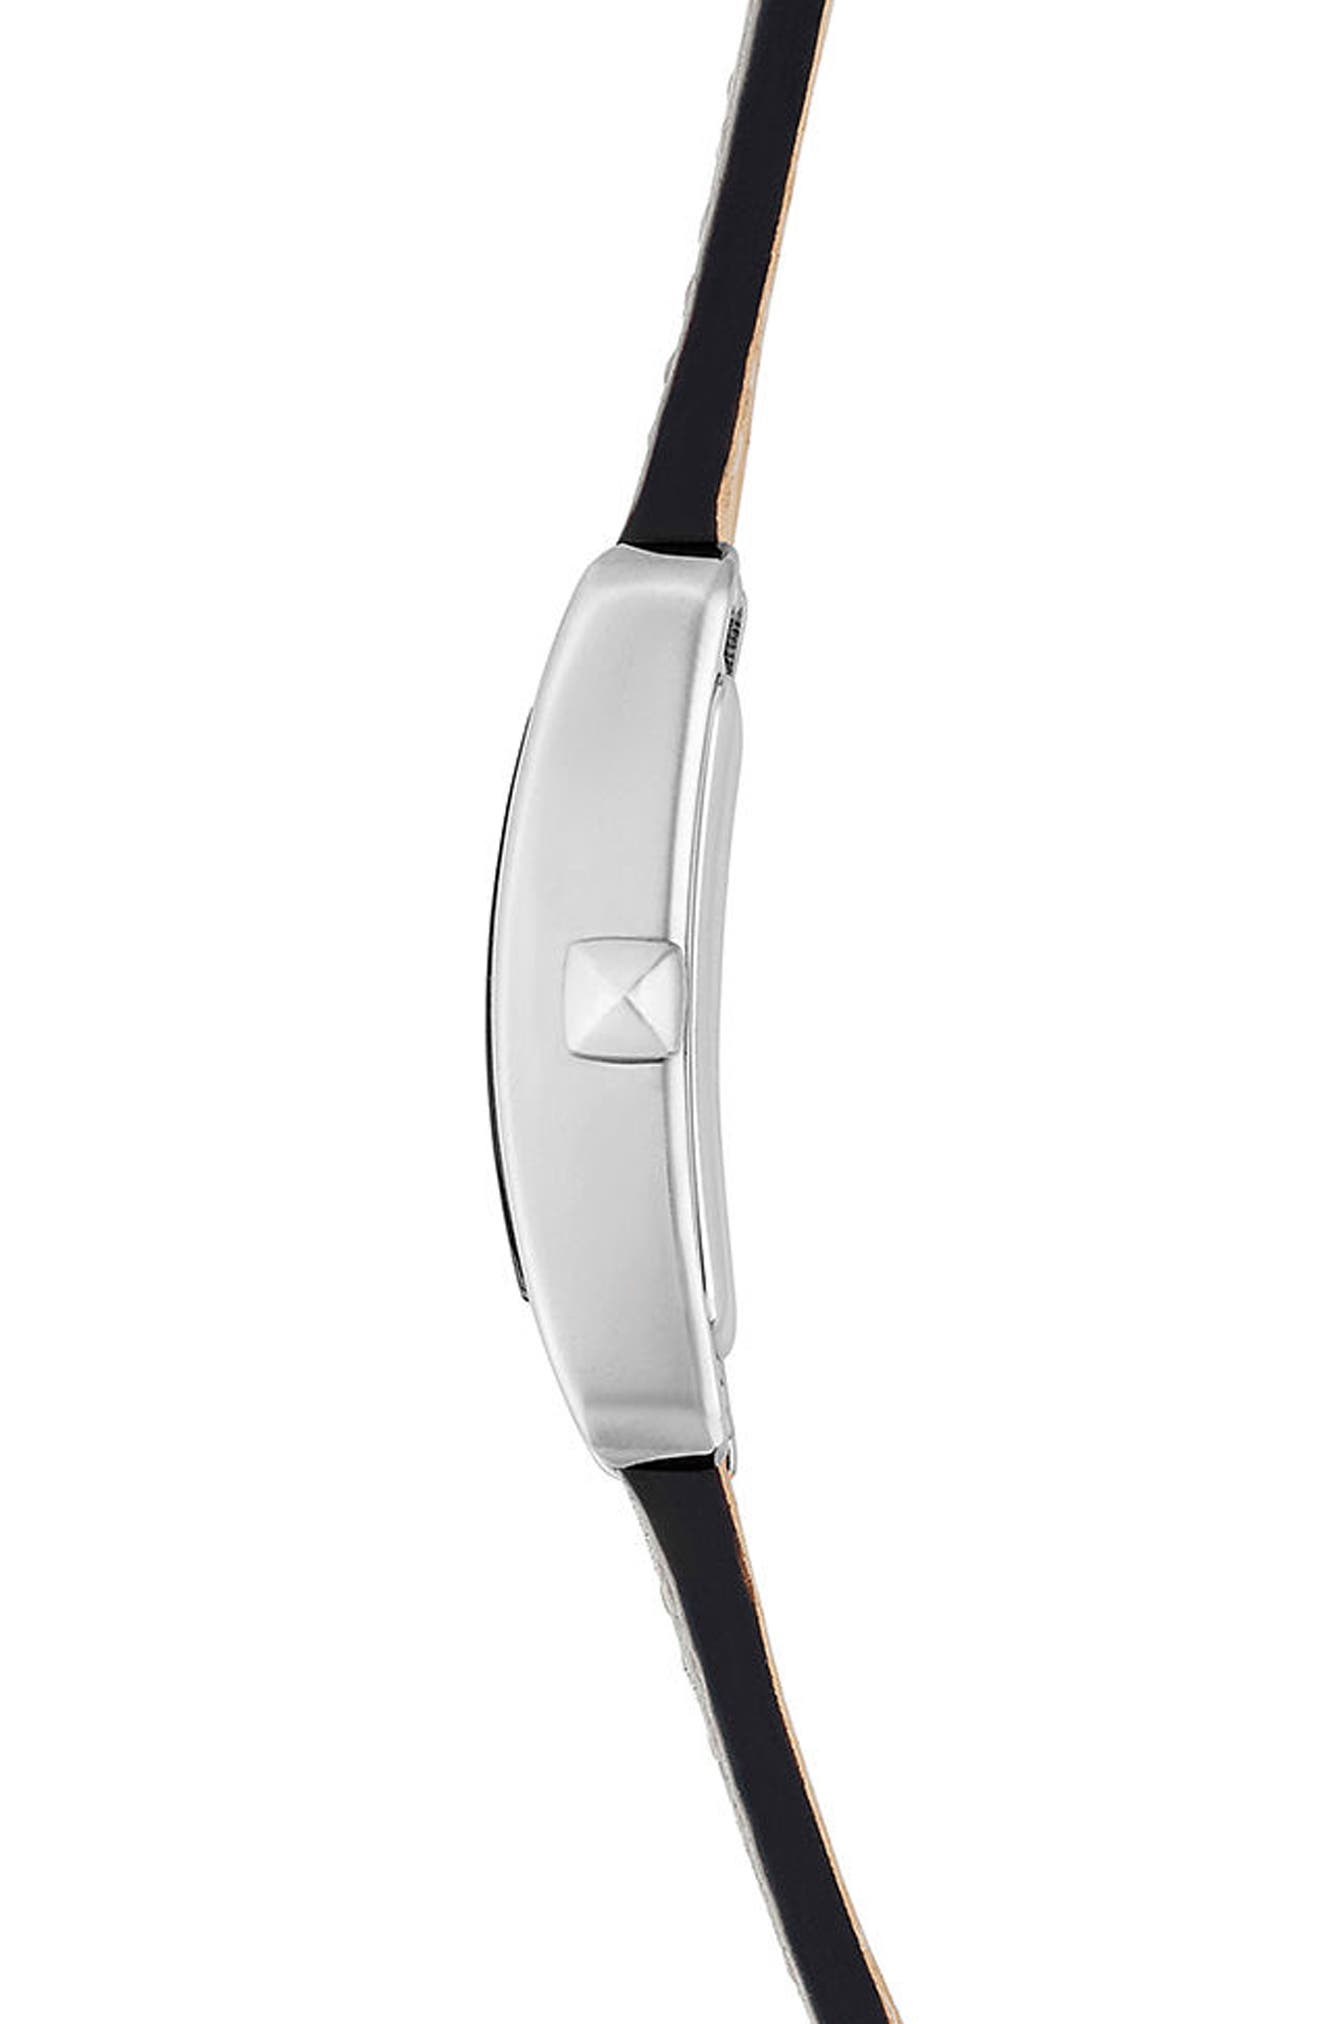 Moment Leather Strap Watch, 19mm x 30mm,                             Alternate thumbnail 3, color,                             PUTTY/ WHITE/ SILVER